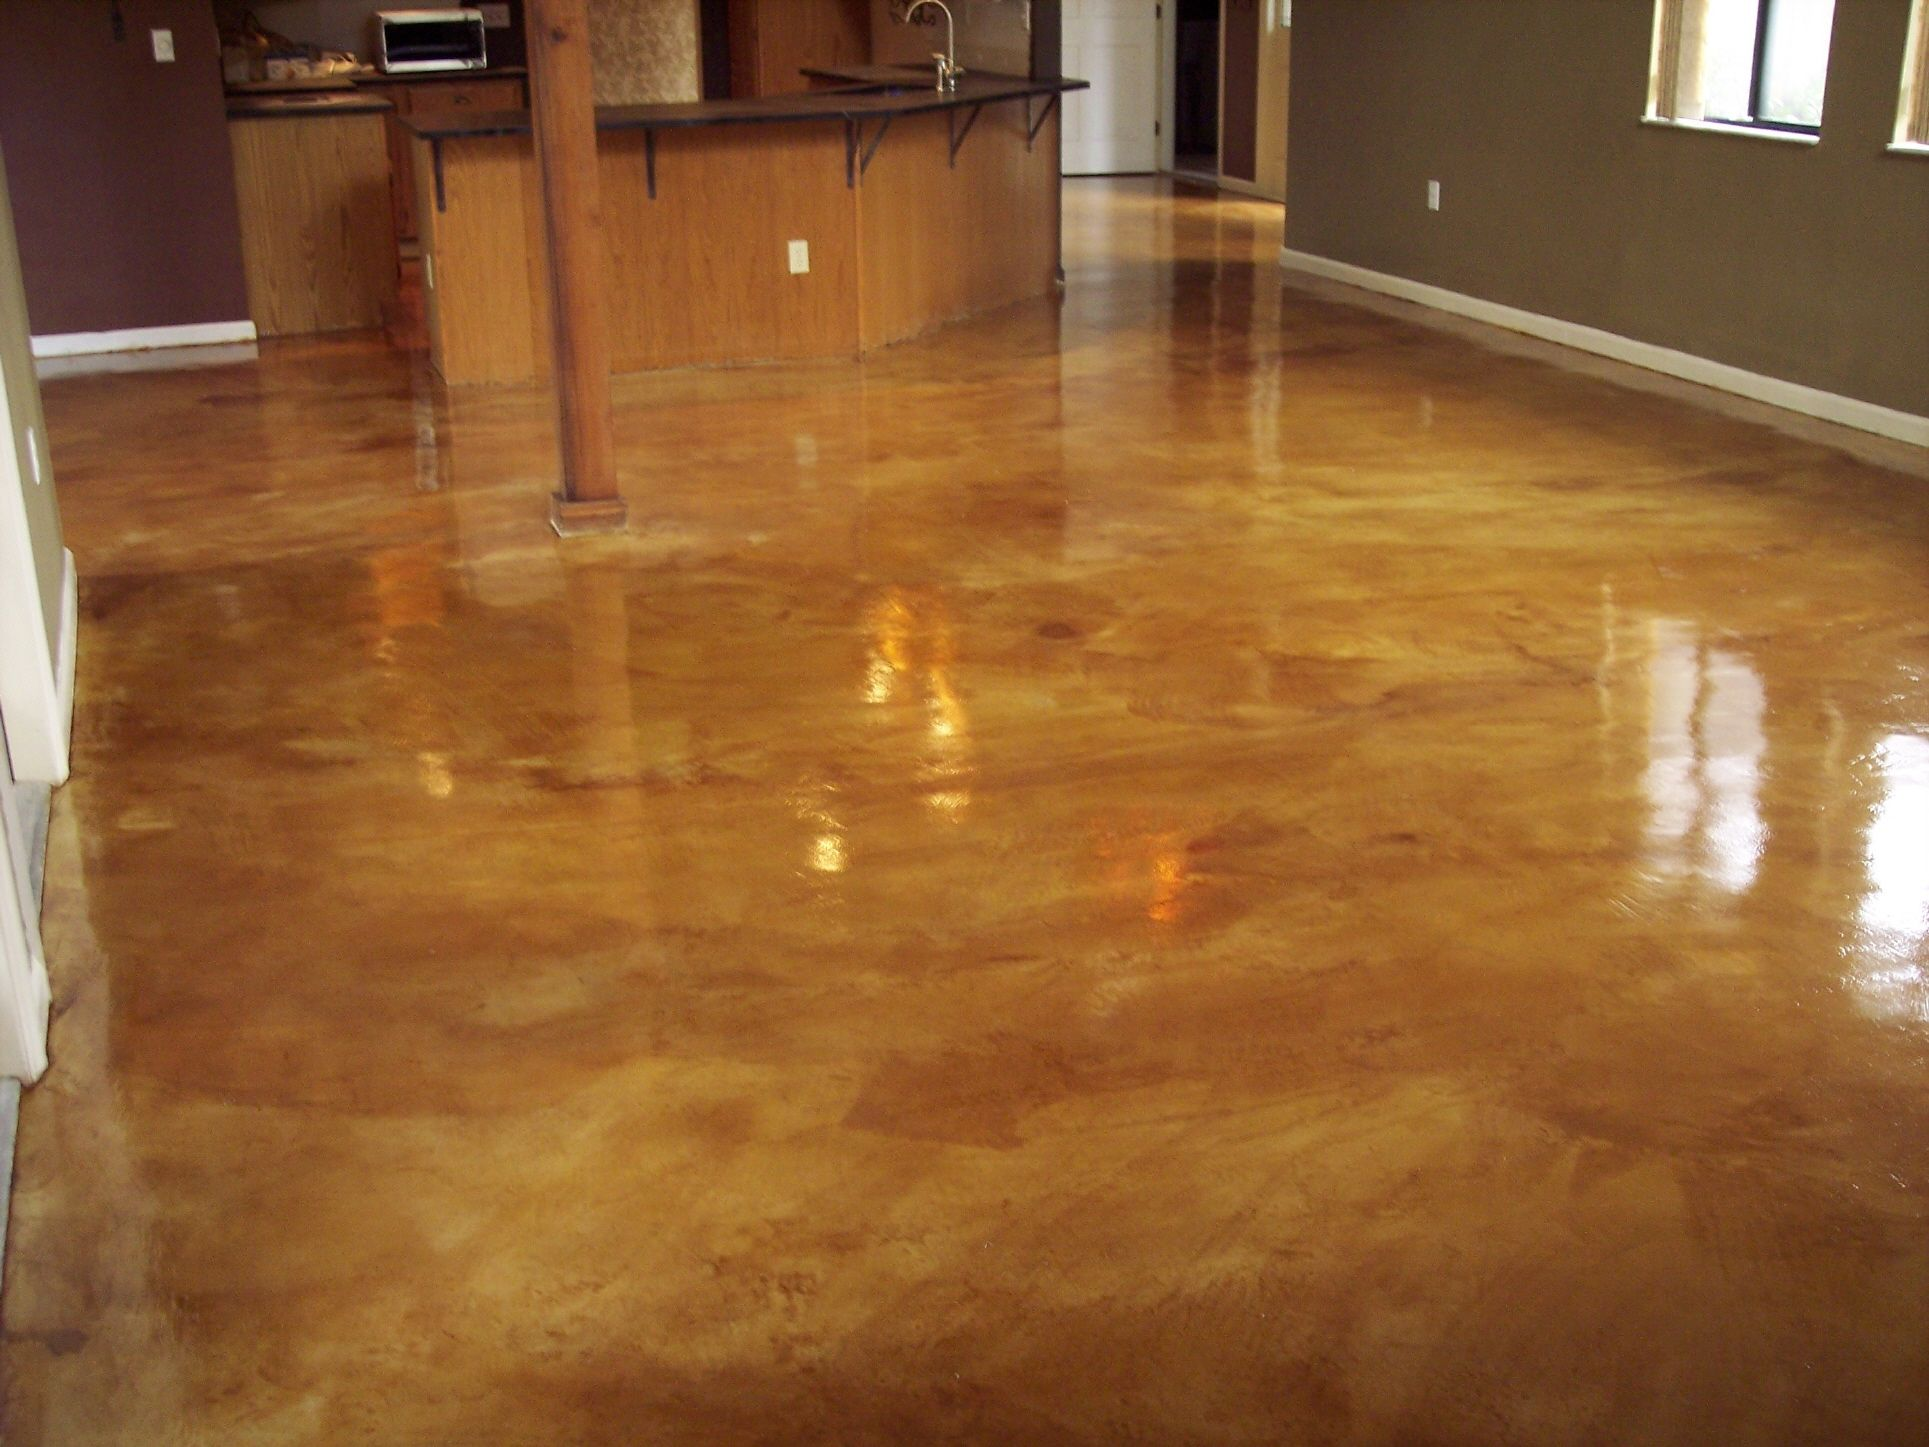 Stained Cement Floors Chemical Staining Concrete Staining Flooring Commercial Flooring